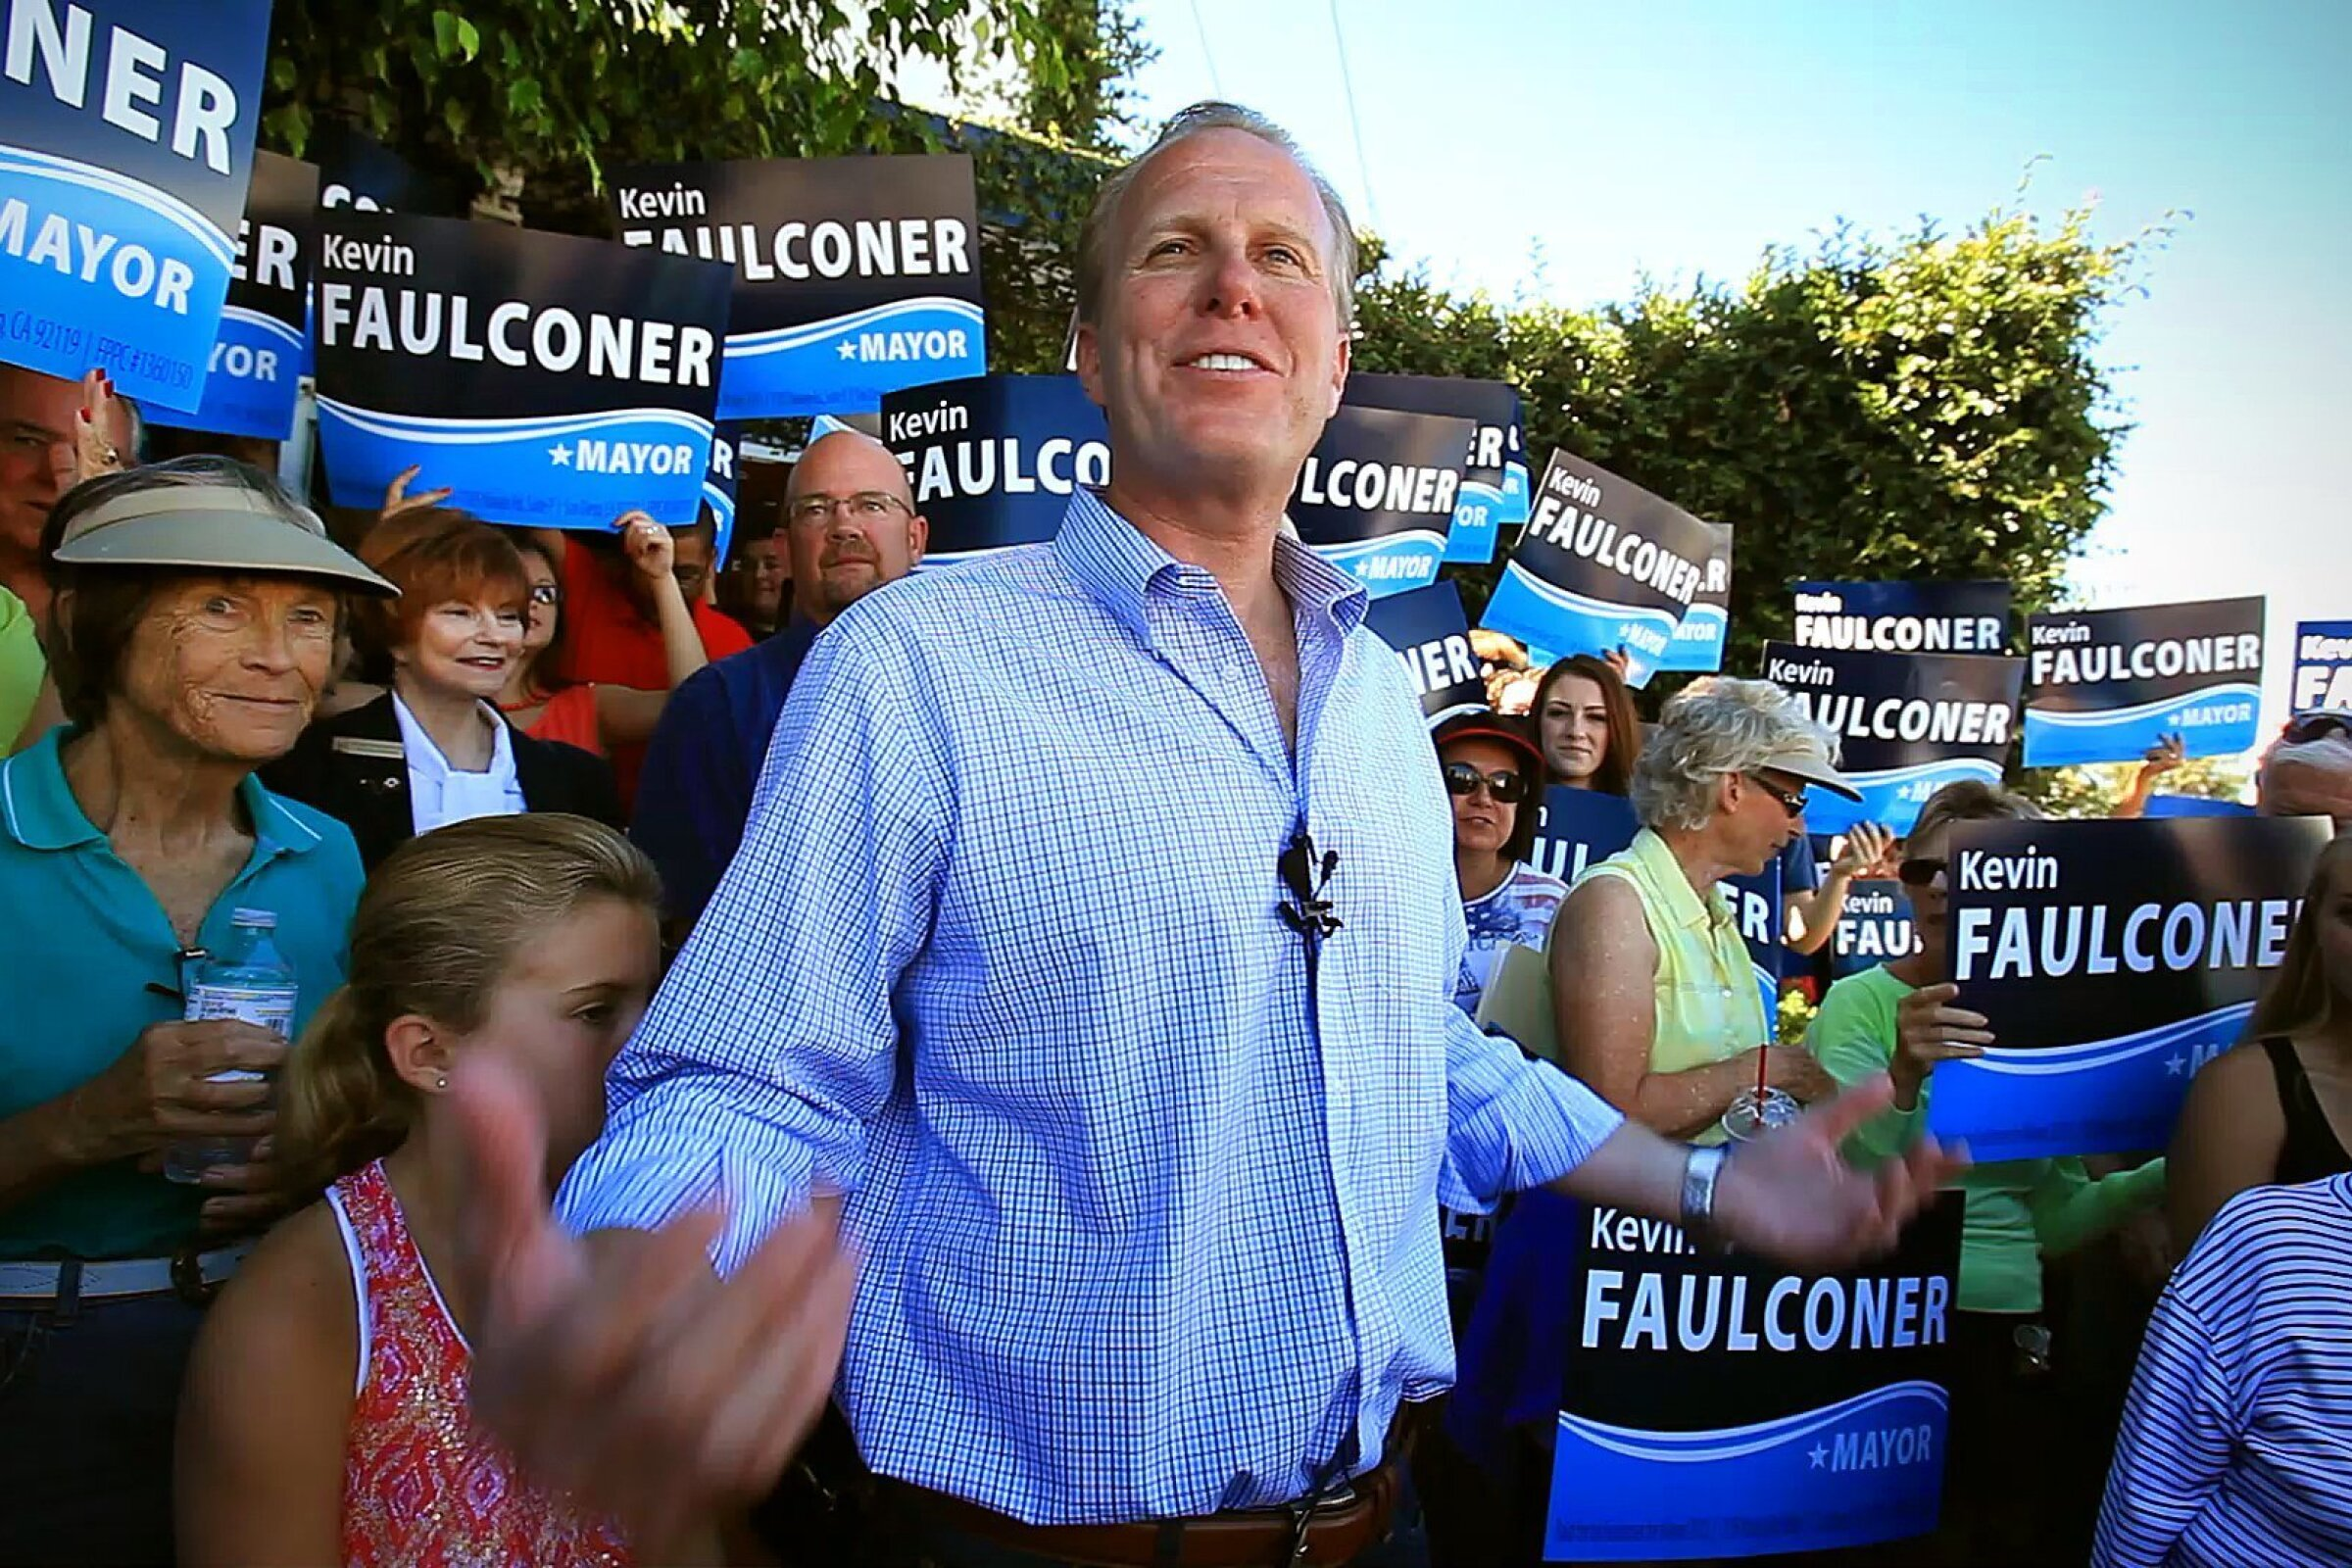 Kevin Faulconer, opening a campaign headquarters for his mayoral bid in September, 2013.